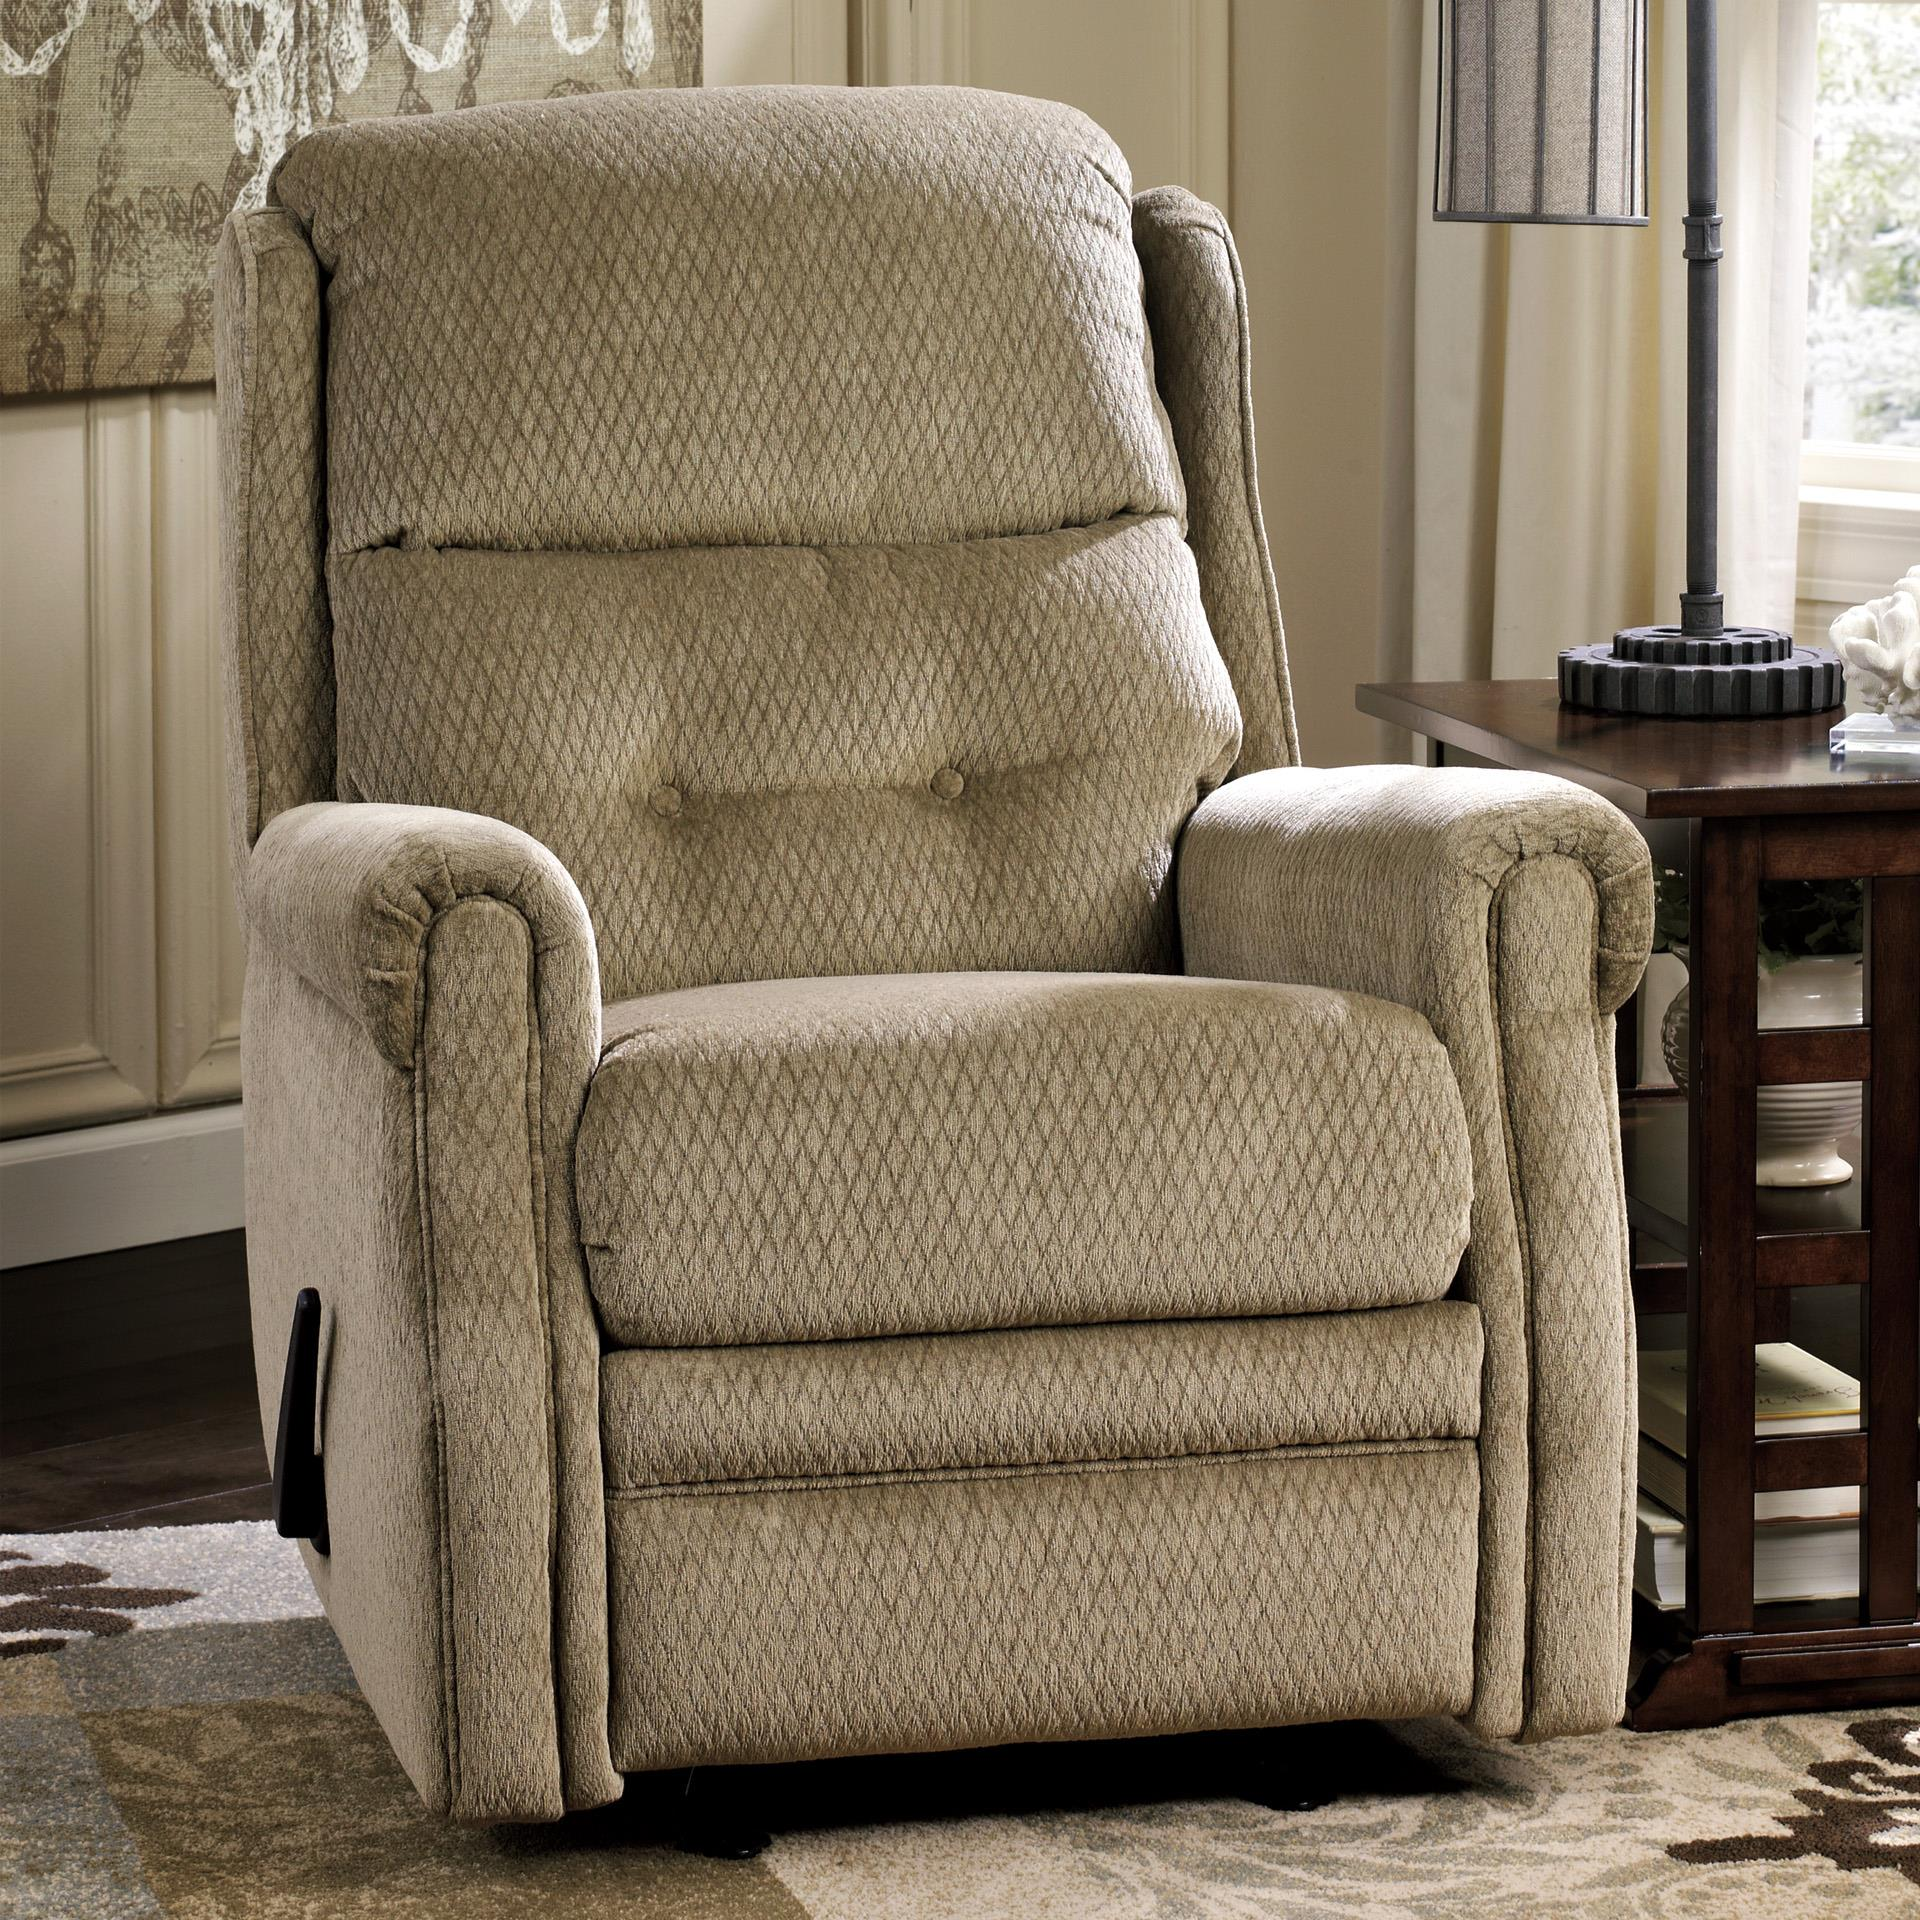 Signature Design by Ashley Meadowbark Glider Recliner - Item Number: 8640727